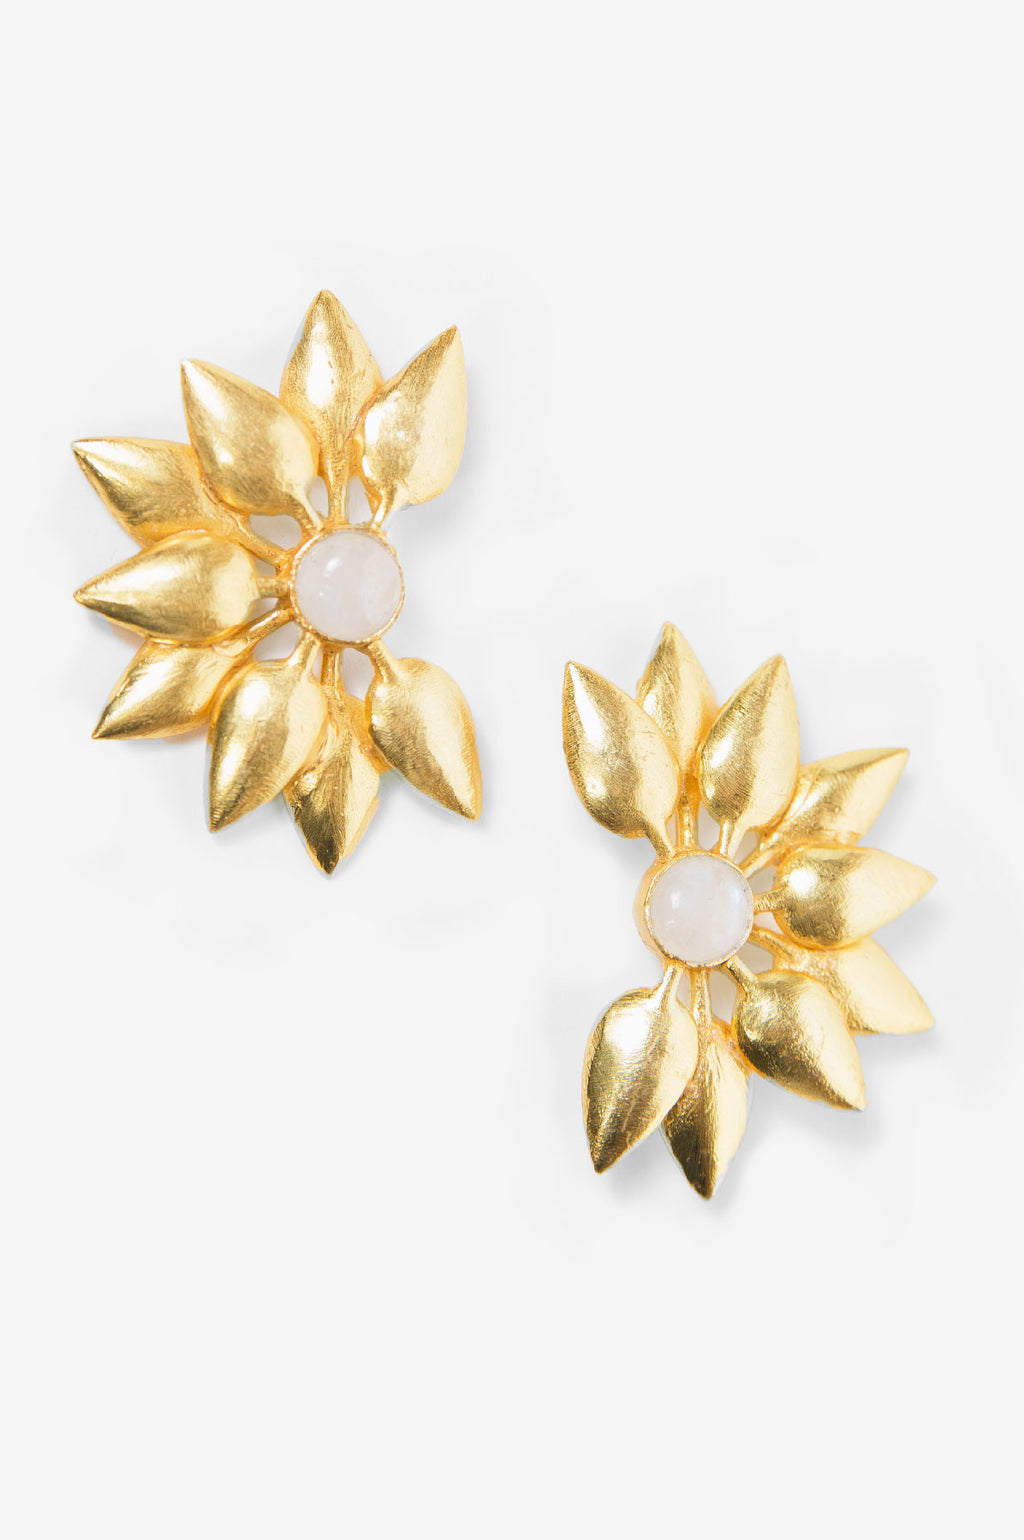 Moonstone Sunburst Stud Earrings